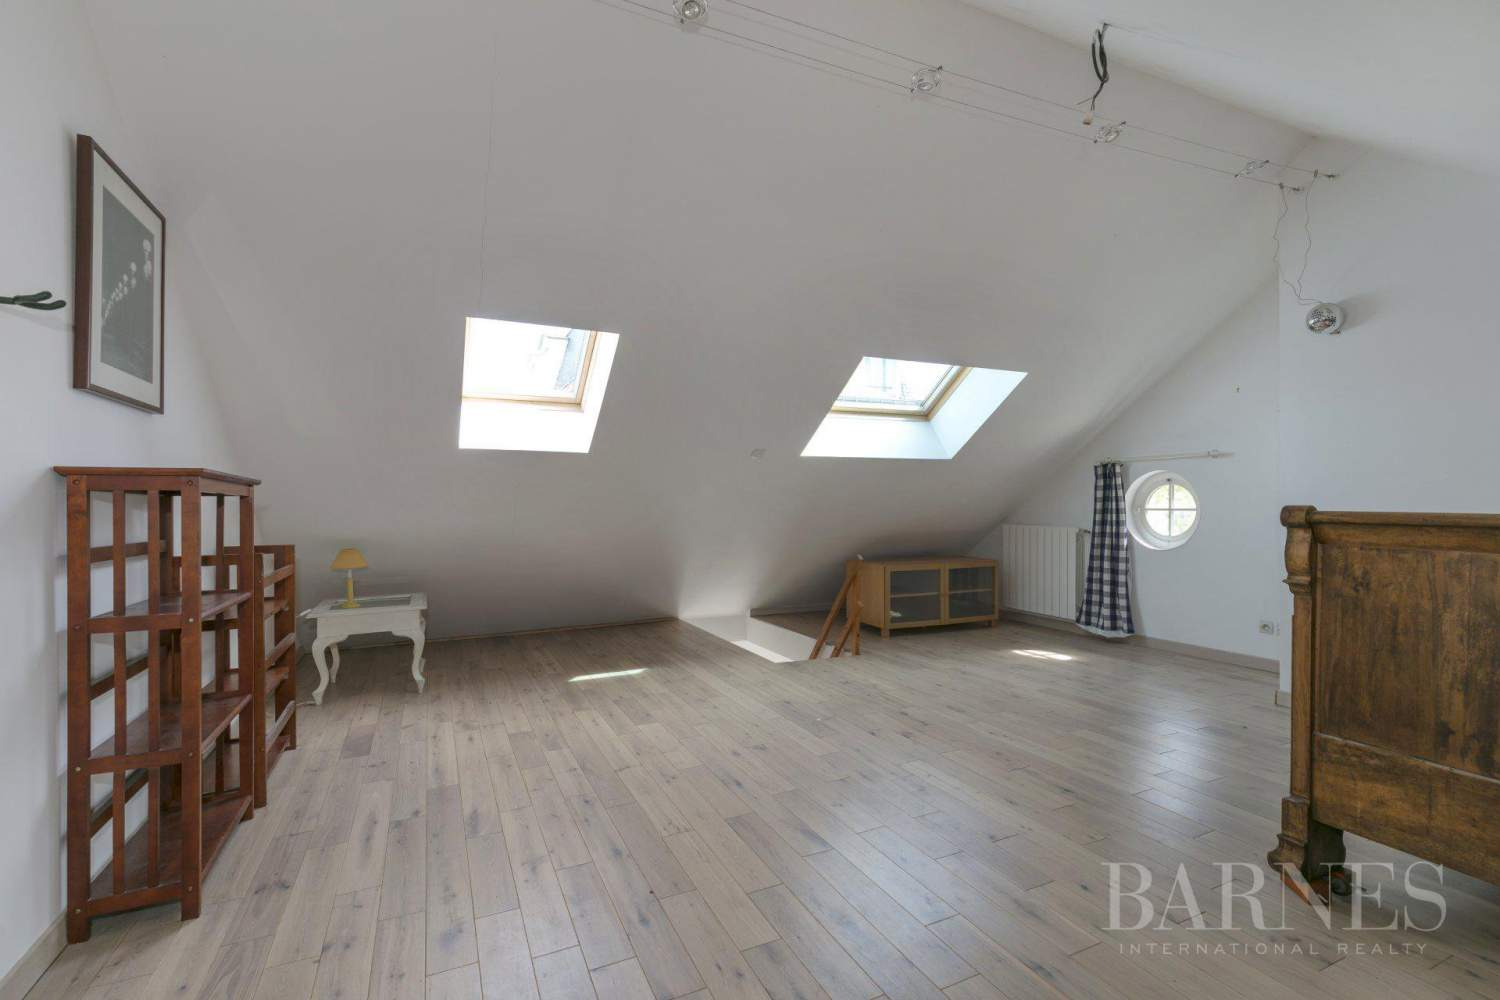 CENTRE OF NOISY-LE-ROI, 330m² (3,552 sq ft) FAMILY HOUSE, 5 BEDROOMS, 500m² (5,382 sq ft), SEPARATE STUDIO picture 11